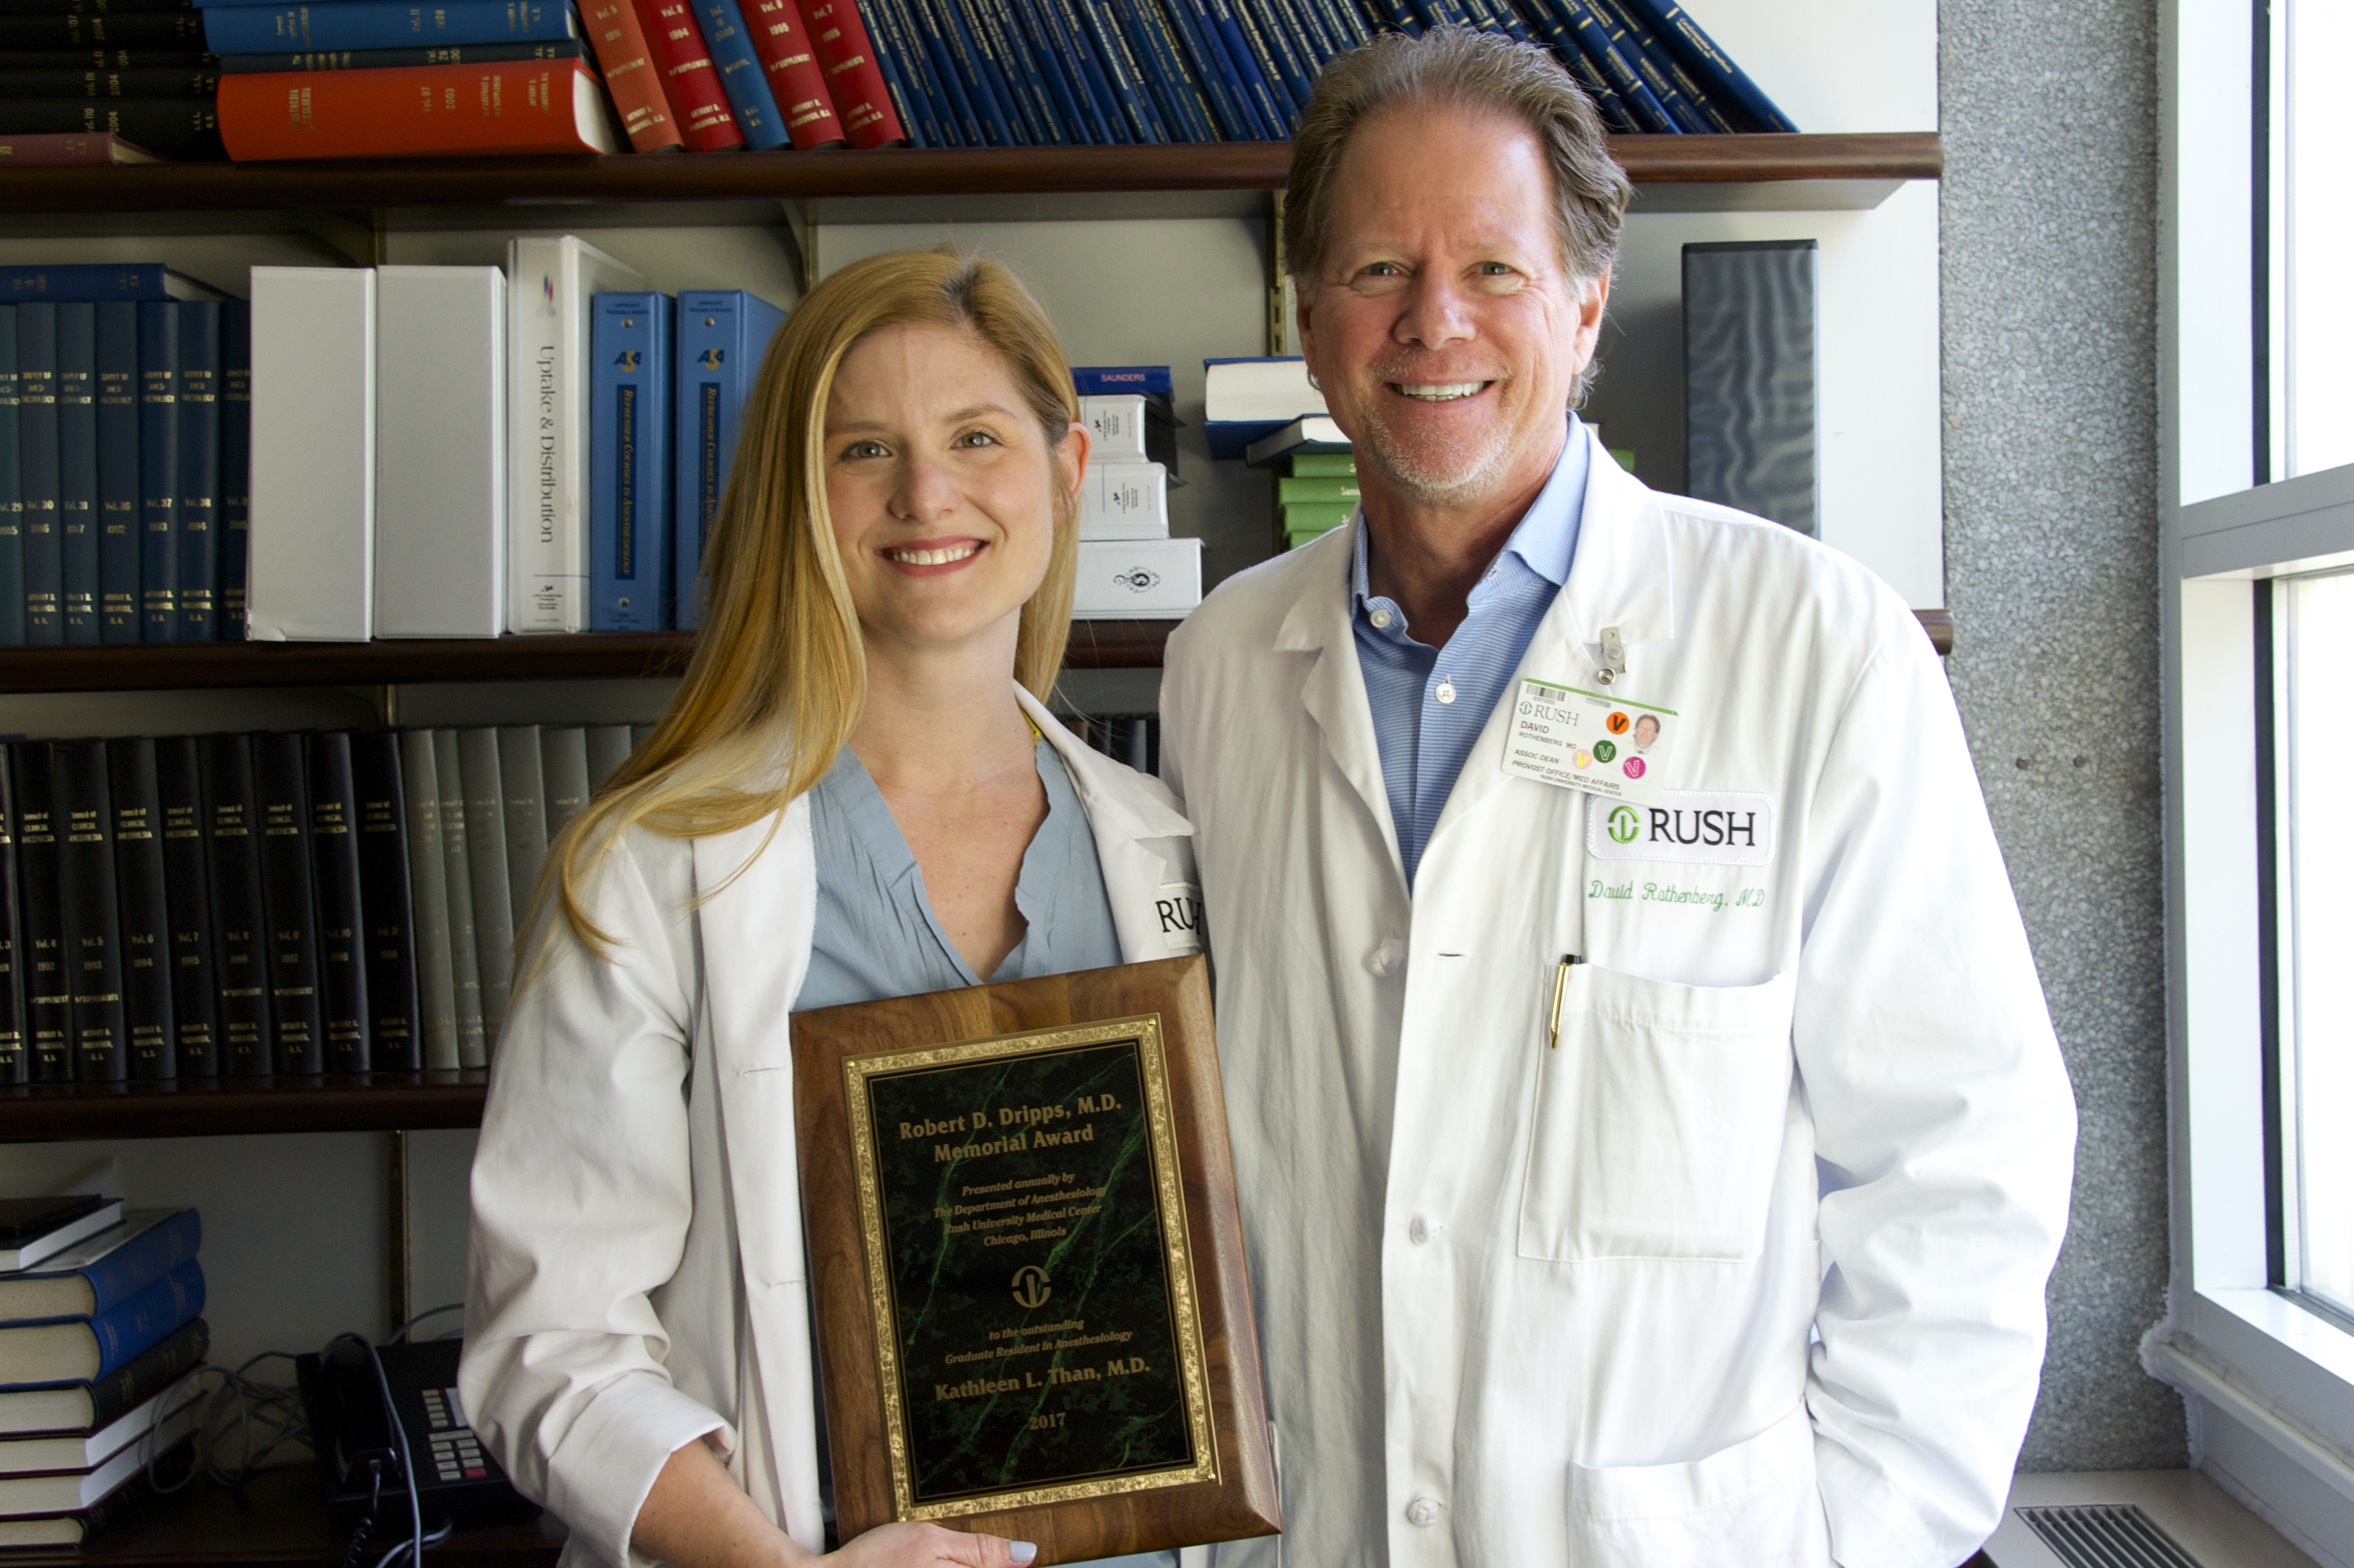 Kathleen L. Than, M.D. wins Robert D. Dripps, M.D. memorial award